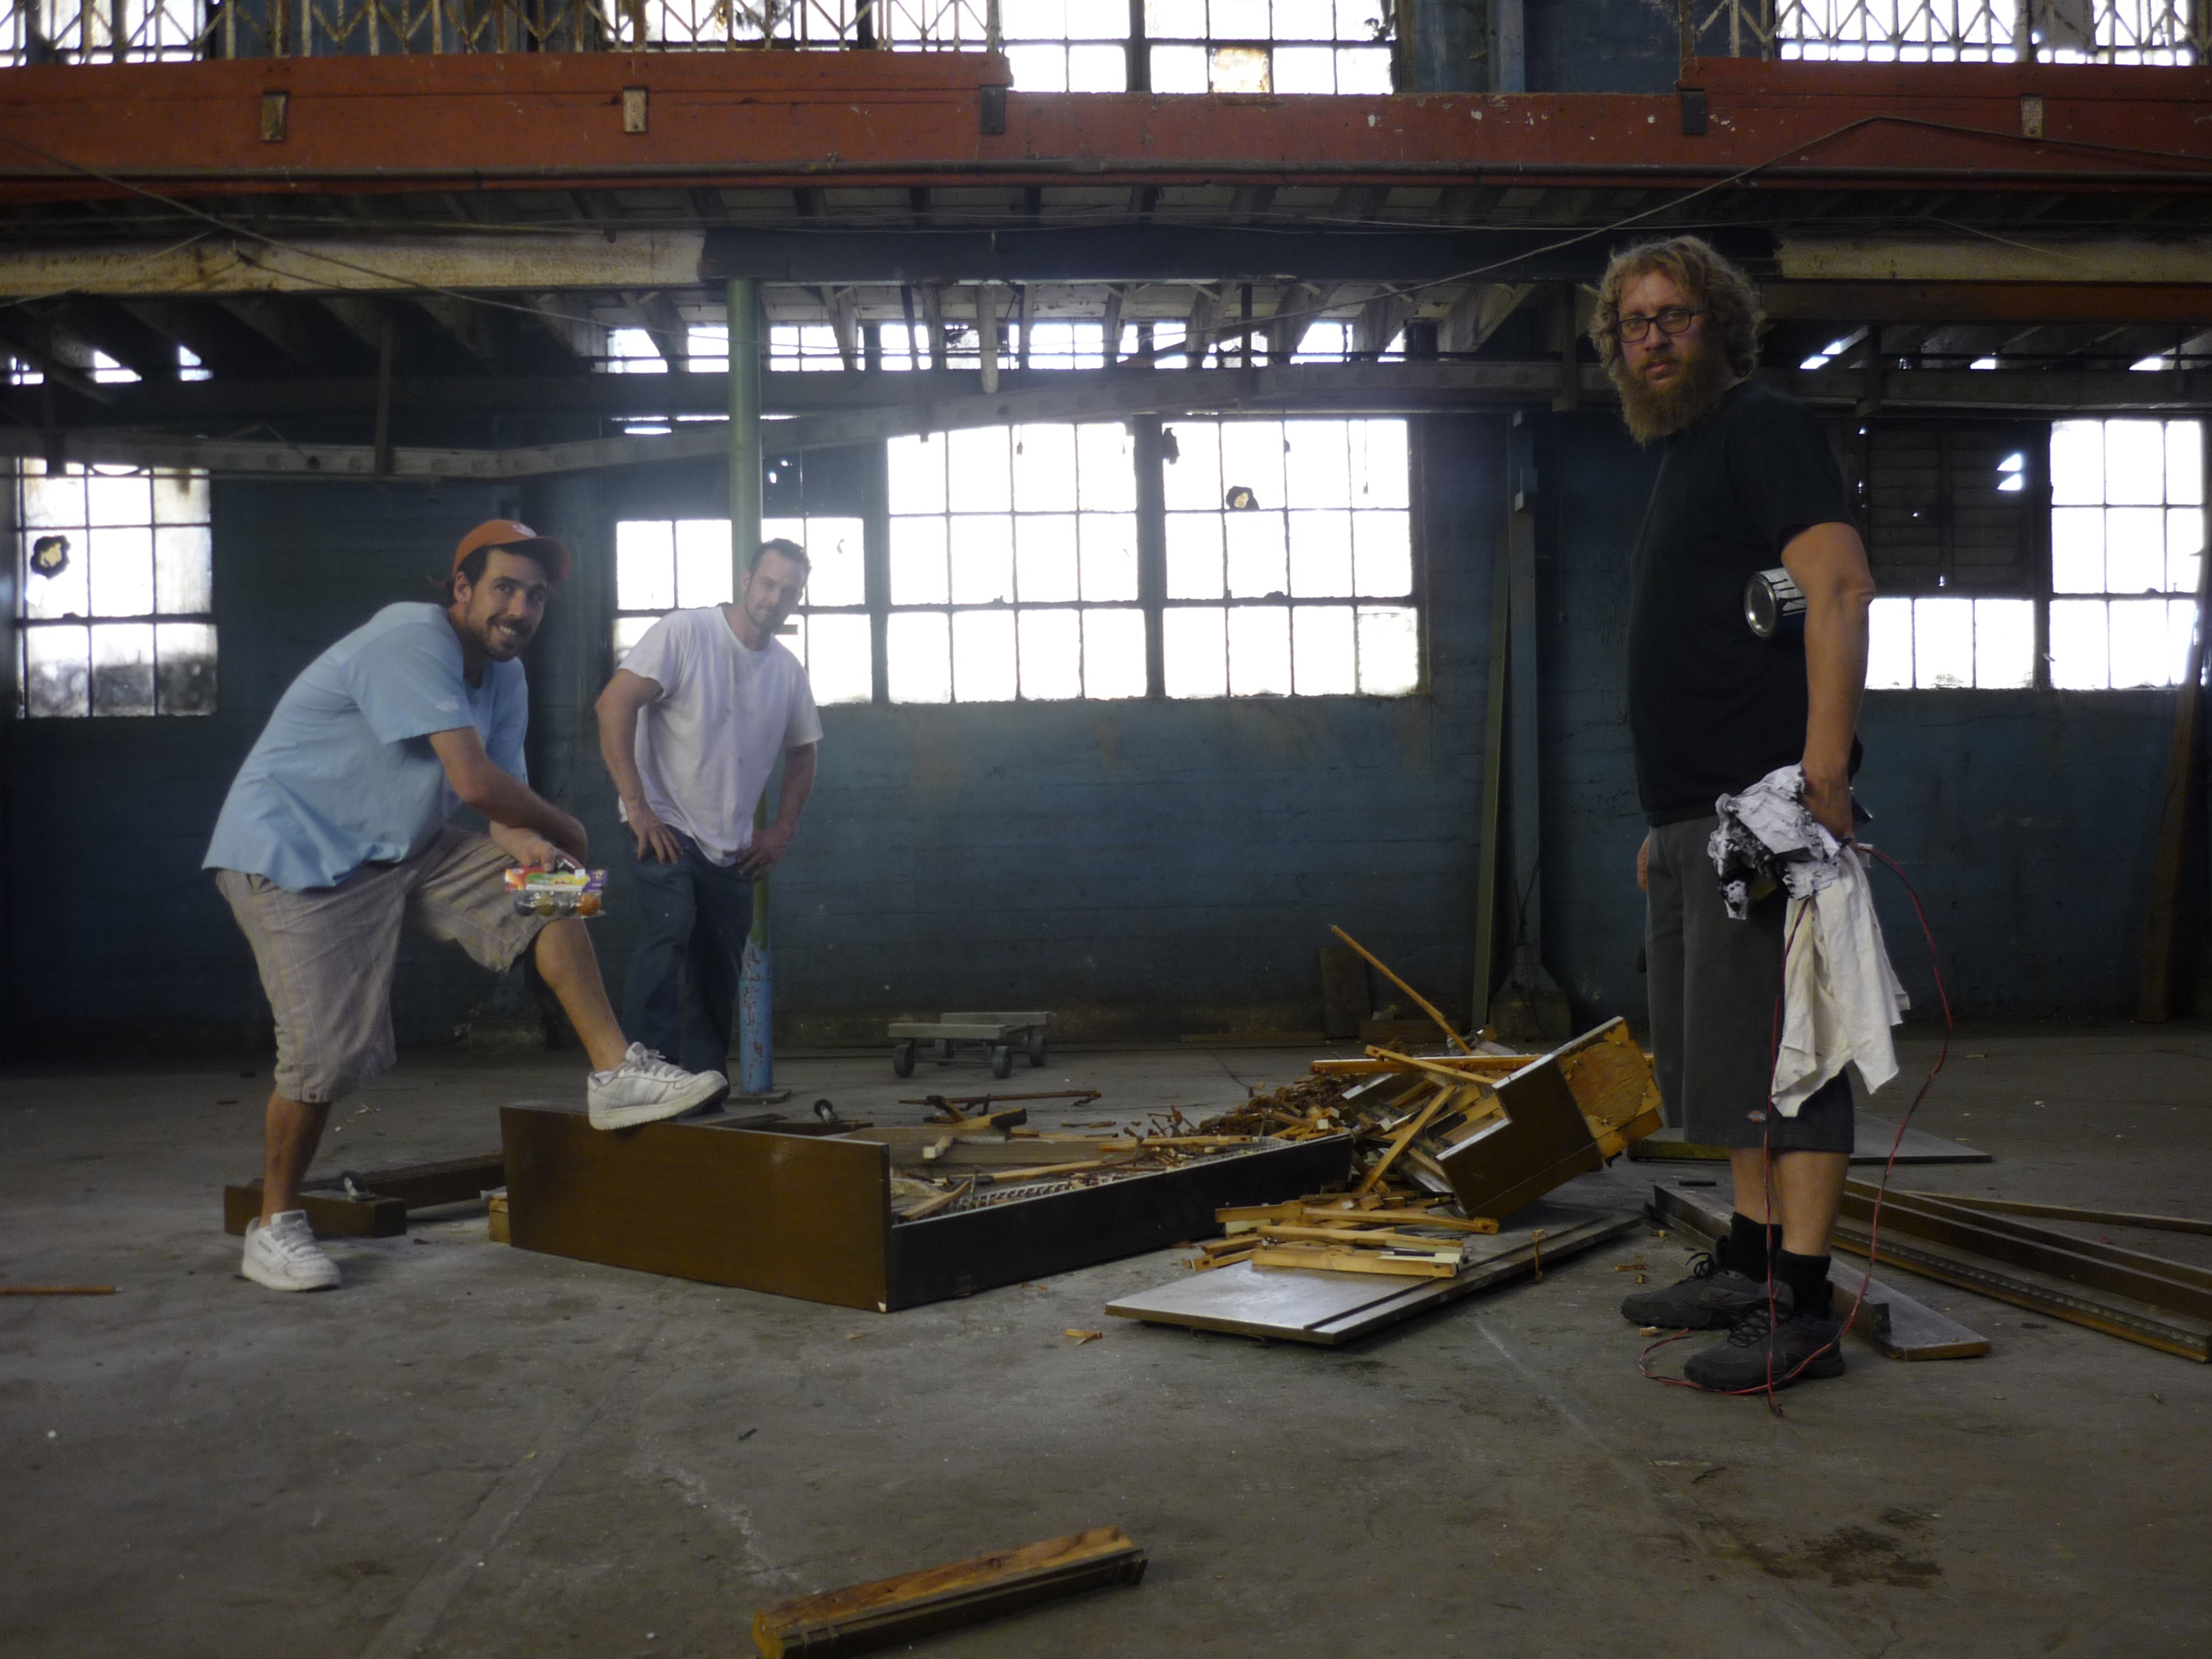 The fellas from Prop Steady admiring their masterpiece.